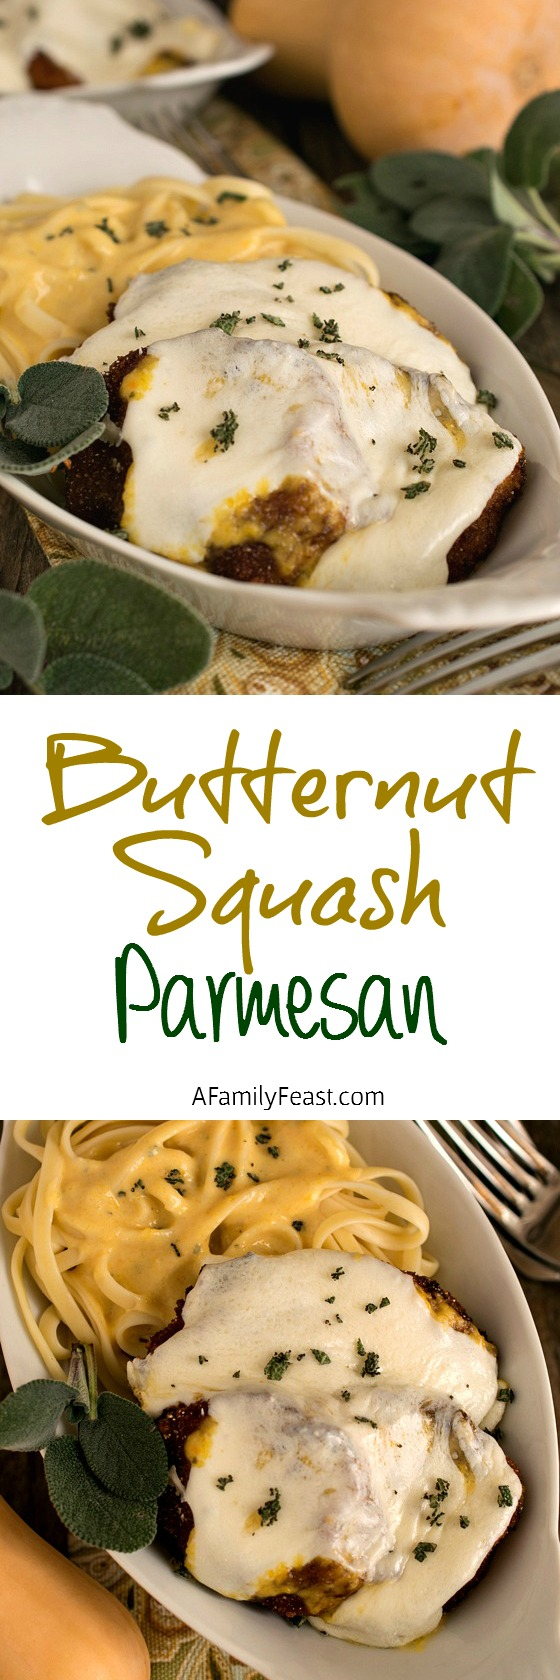 A delicious twist on a classic Italian meal - Butternut Squash Parmesan served with Linguine and a delicious creamy pasta sauce!